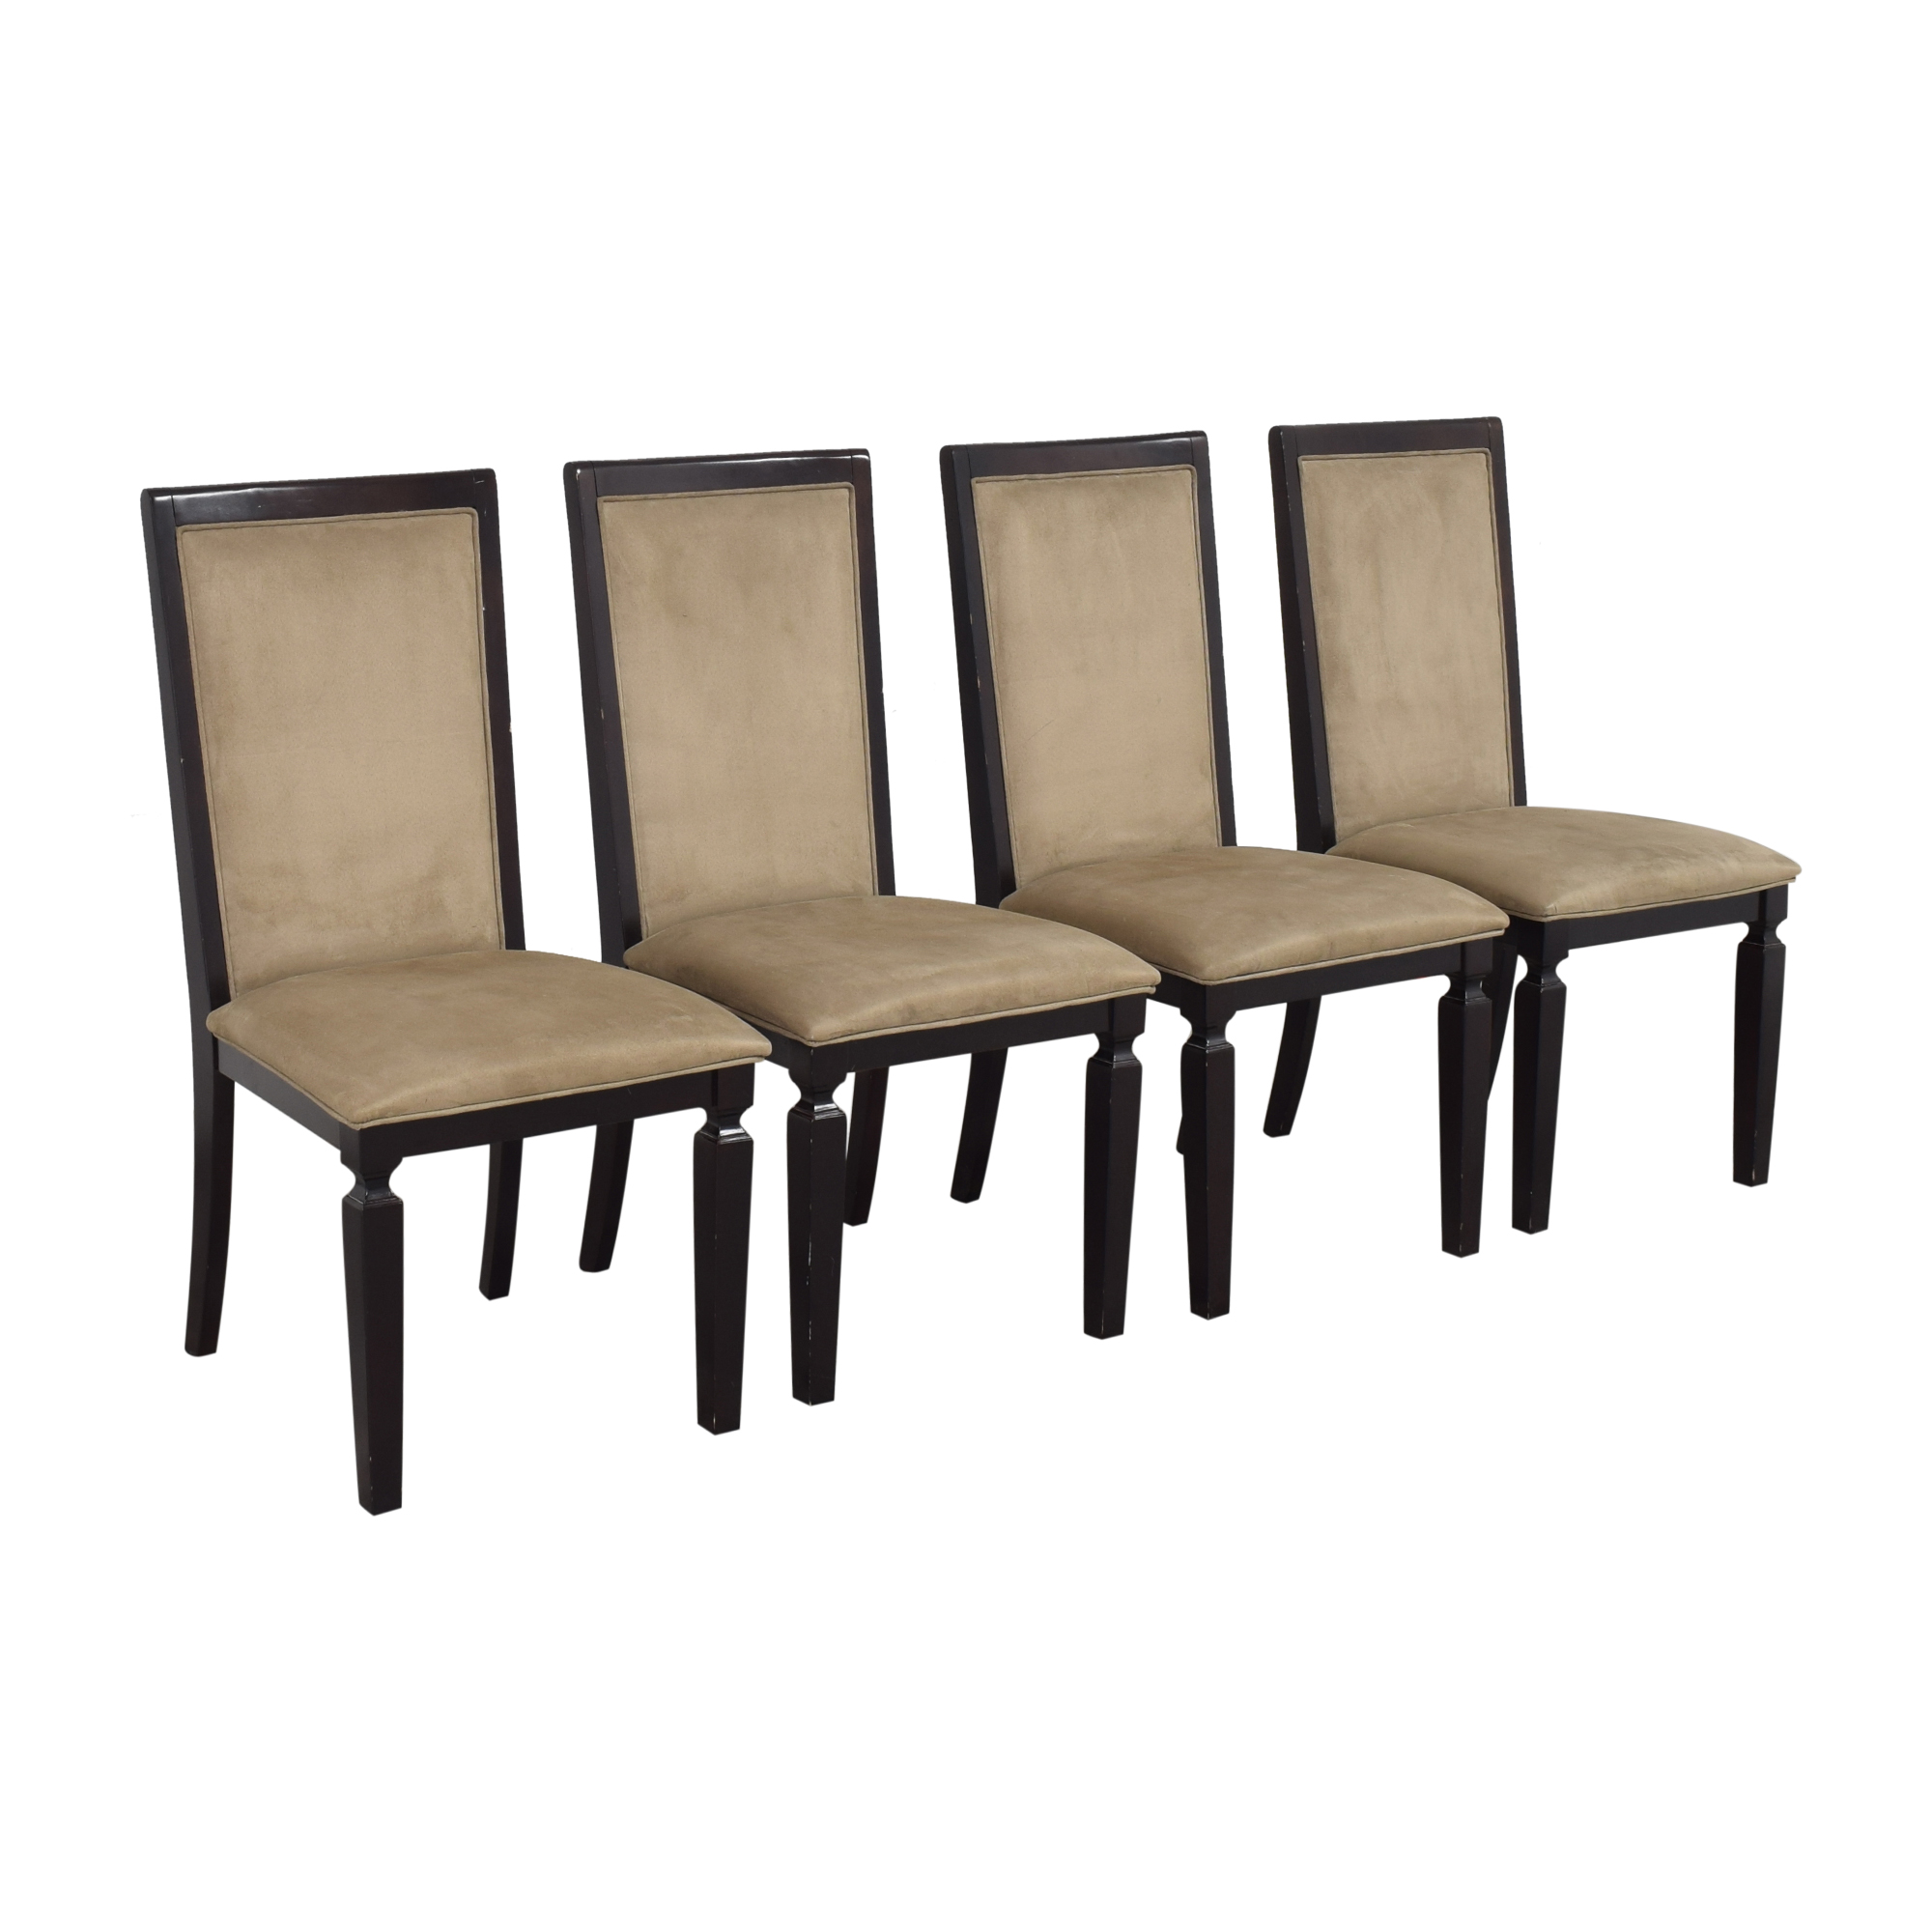 buy Homelegance Furniture Dining Side Chairs Homelegance Furniture Chairs